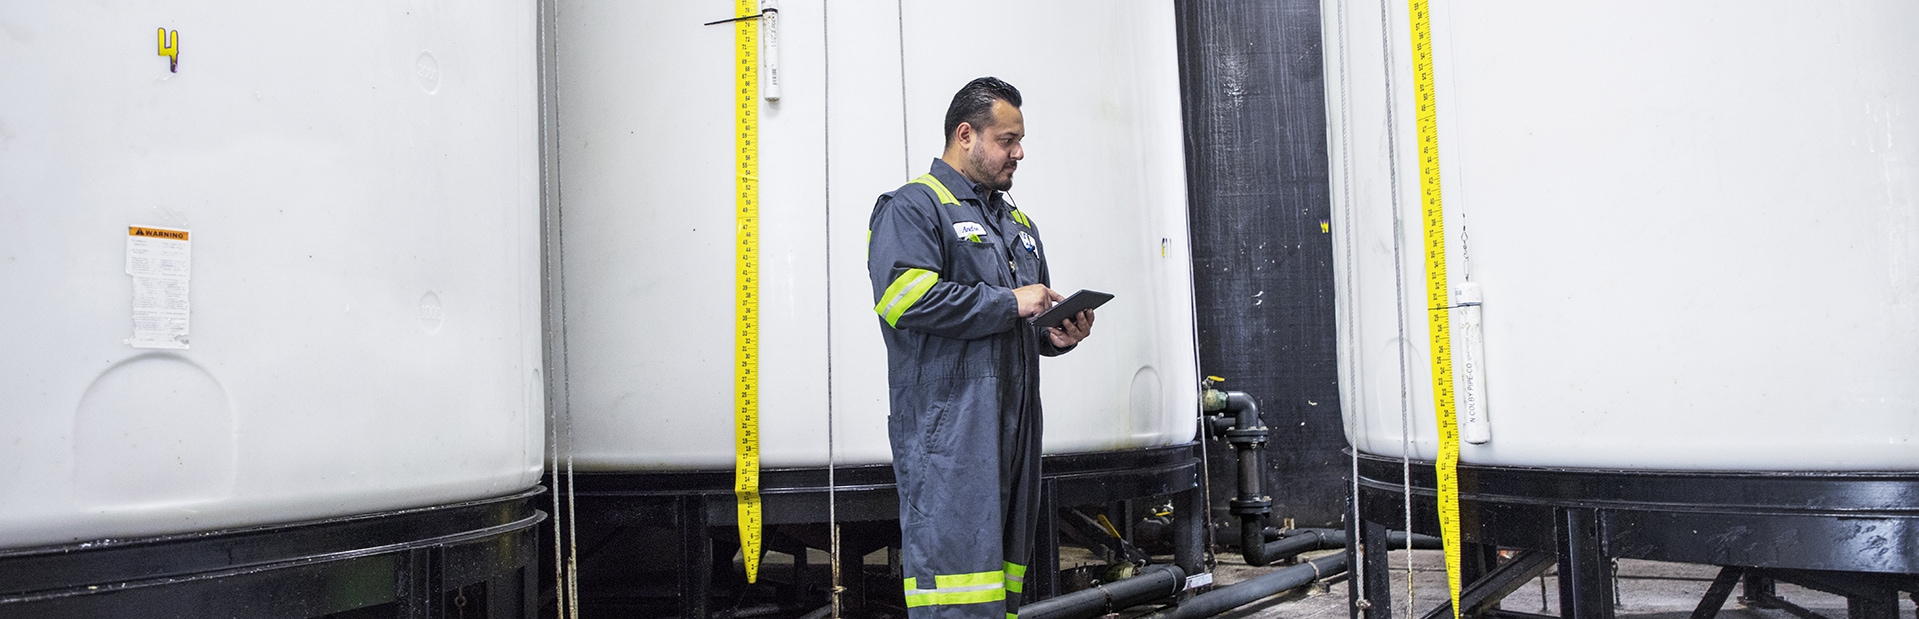 A frontline worker wearing coveralls with reflective shoulder and arm bands, using a tablet in a job site.